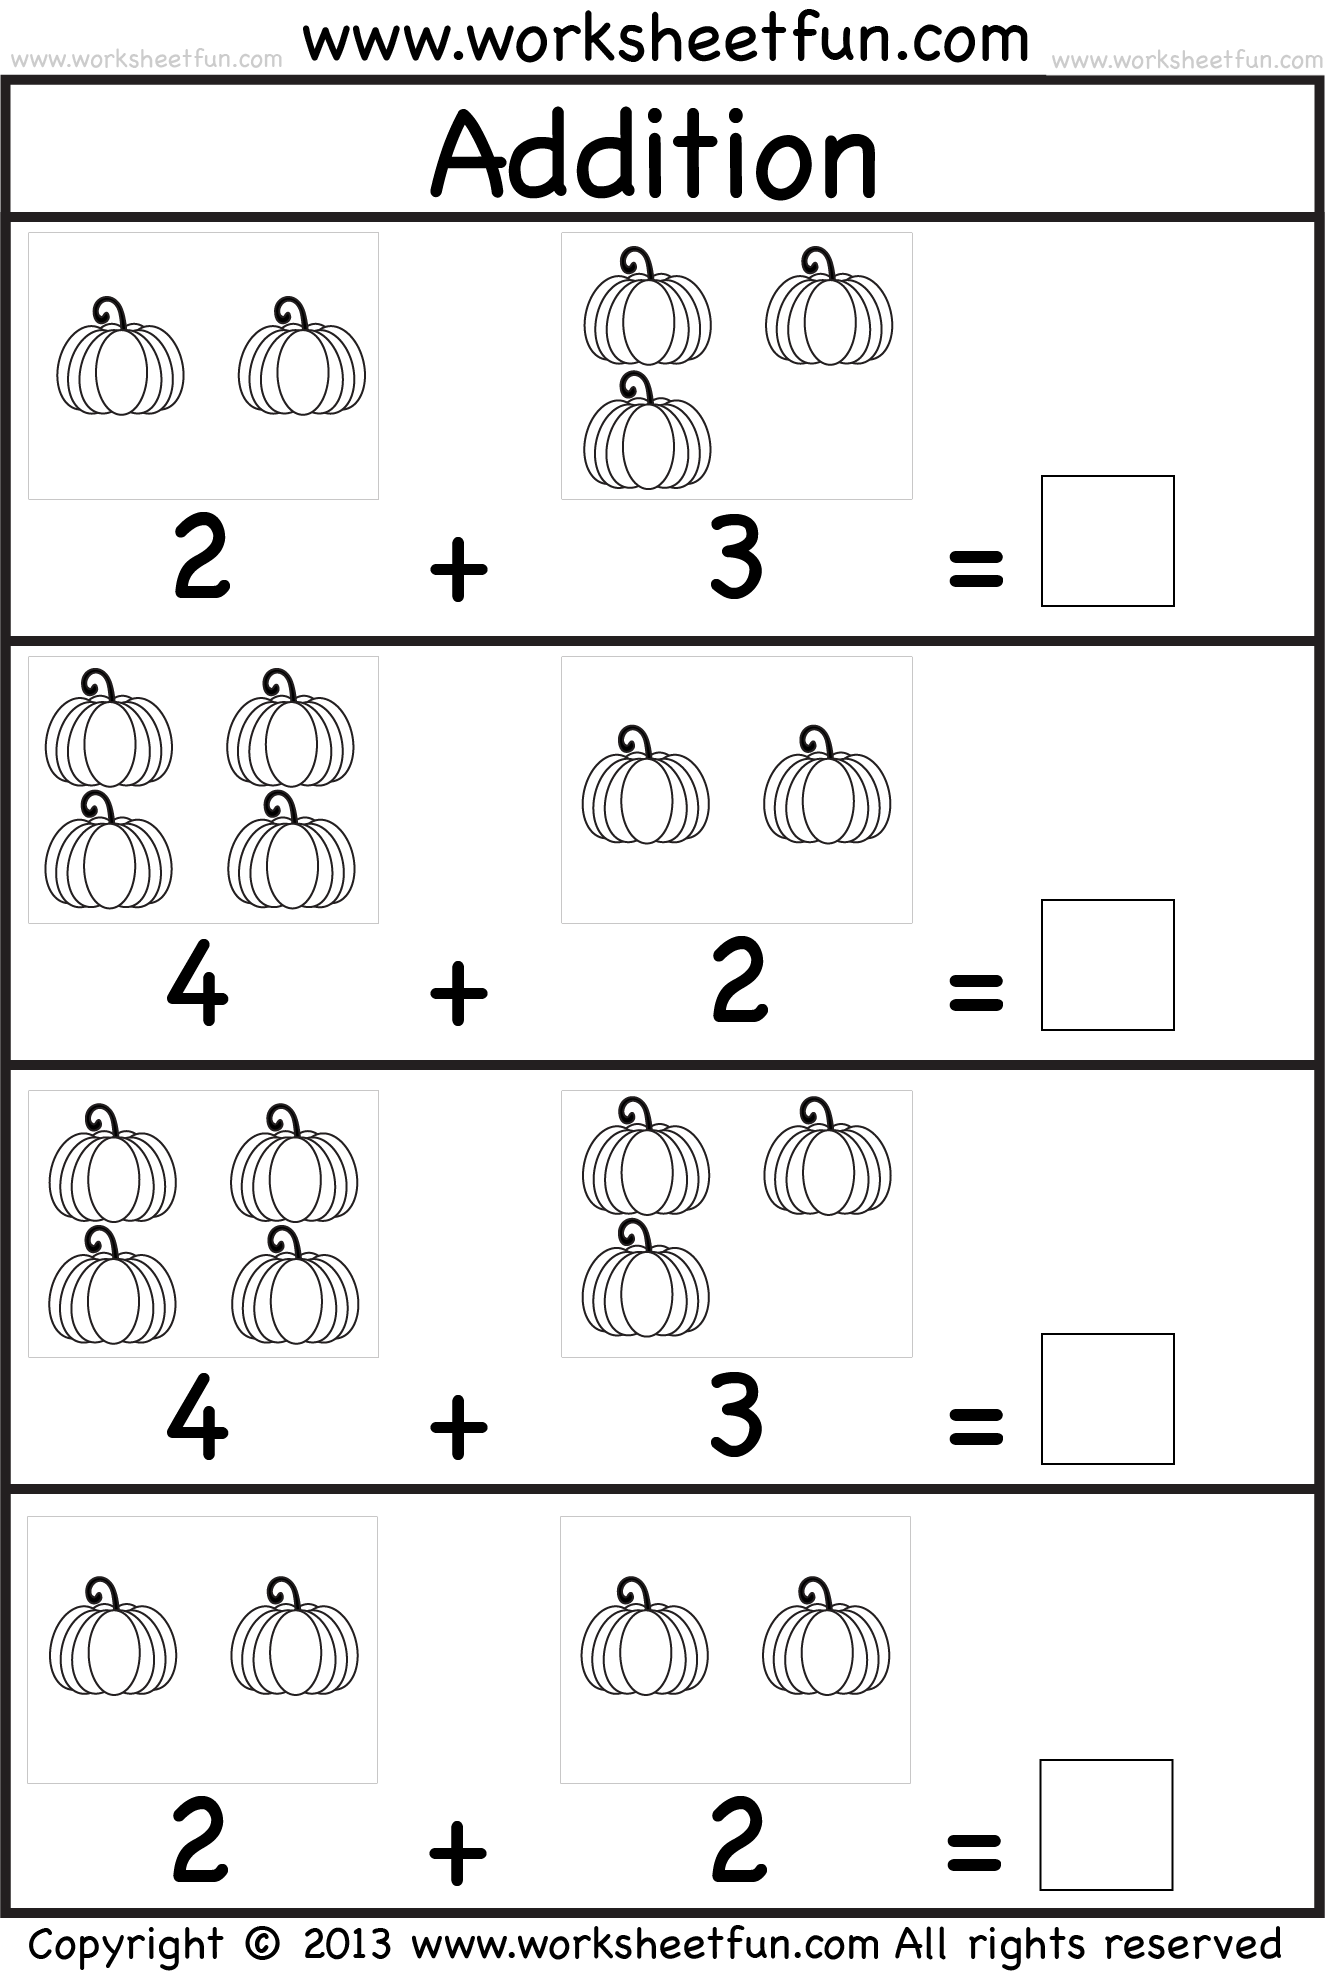 Kids practice adding singledigit numbers and writing the sums on – Addition Worksheet for Kids